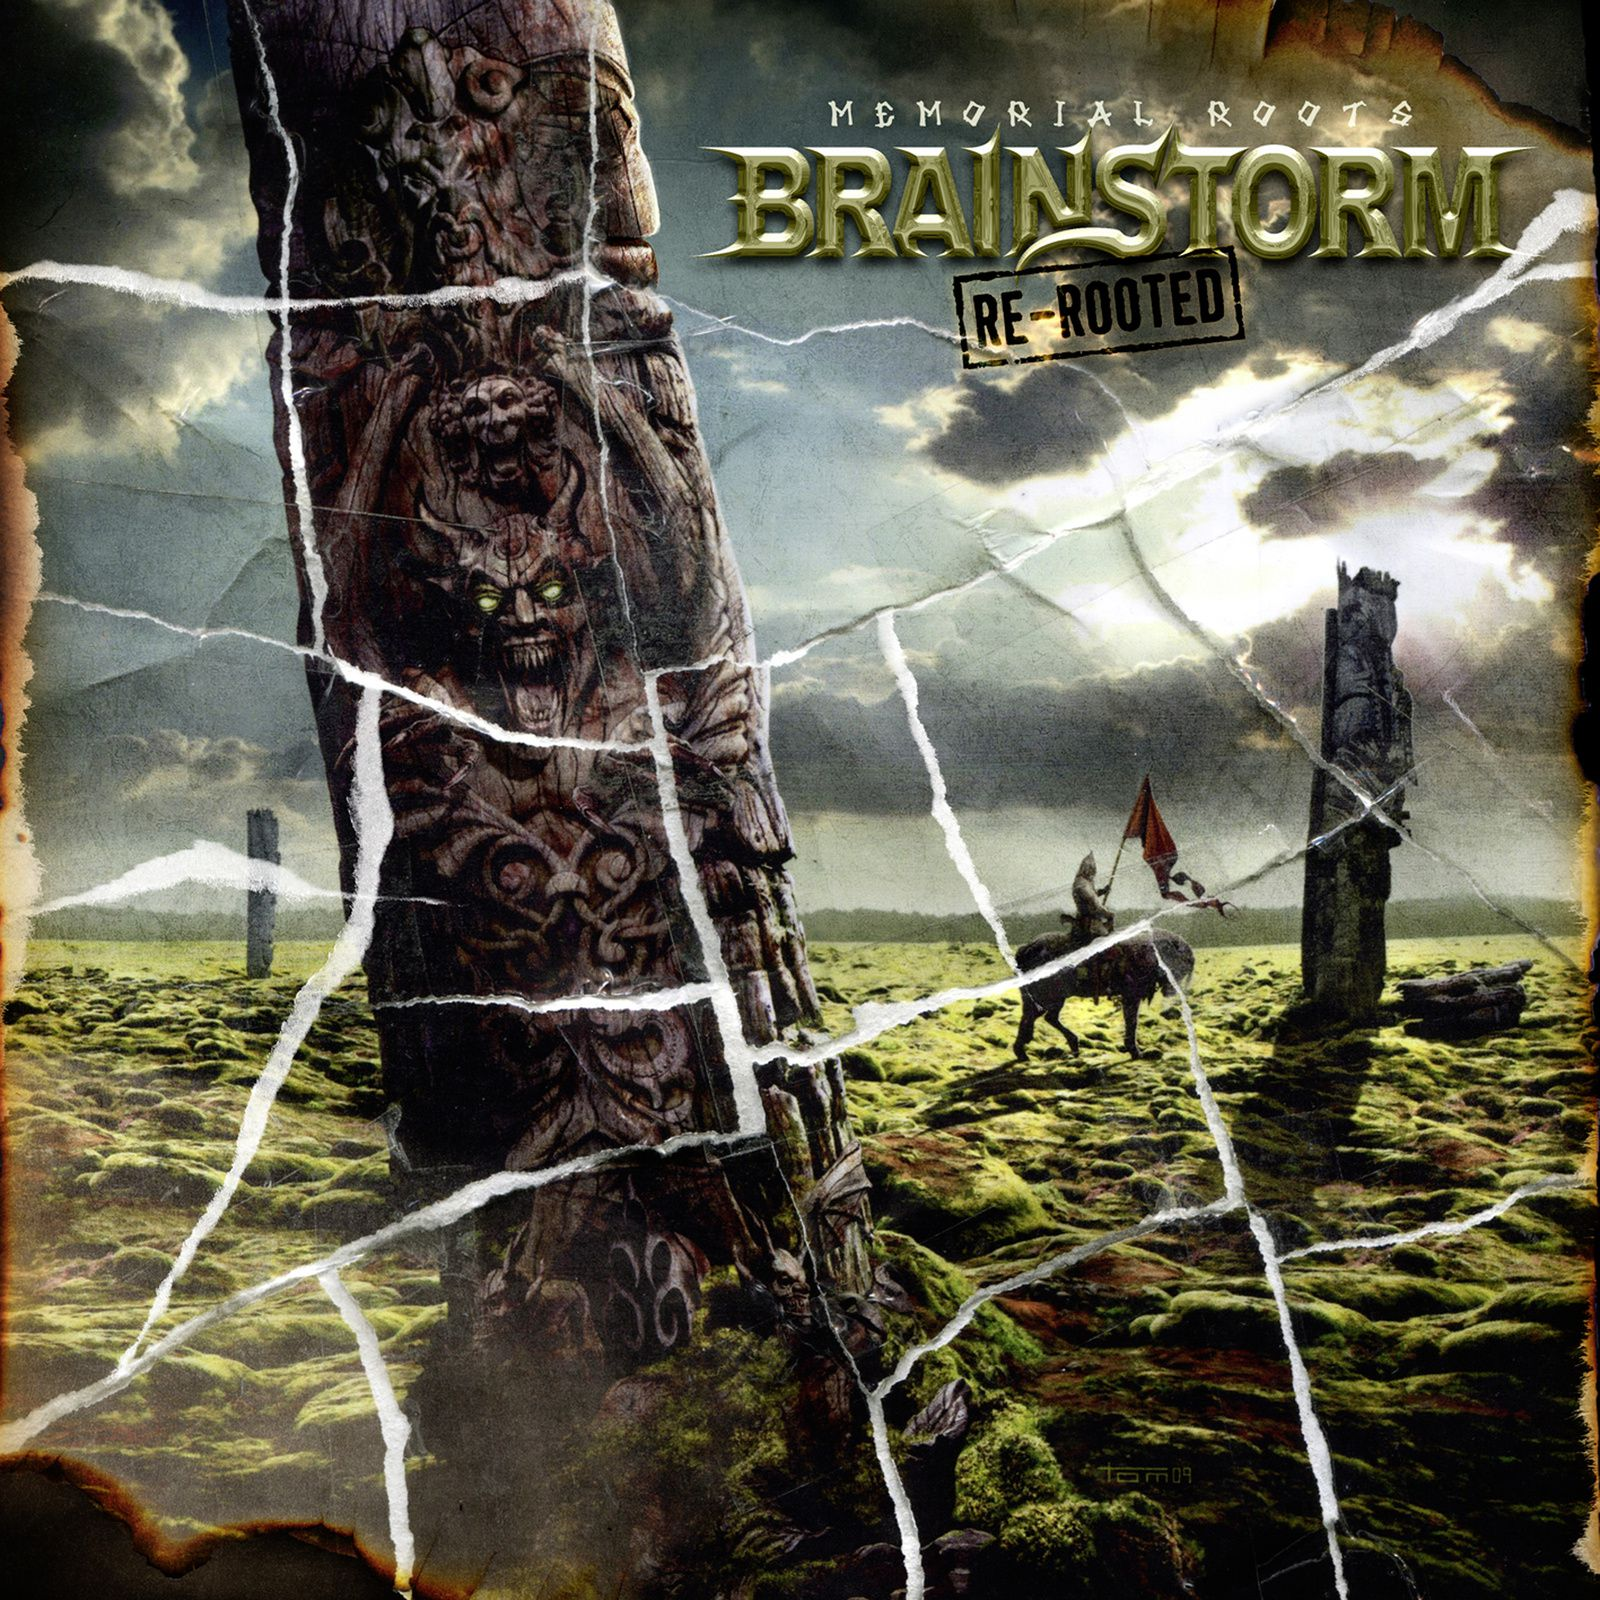 """CD review BRAINSTORM """"Memorial Roots"""" re-rooted"""